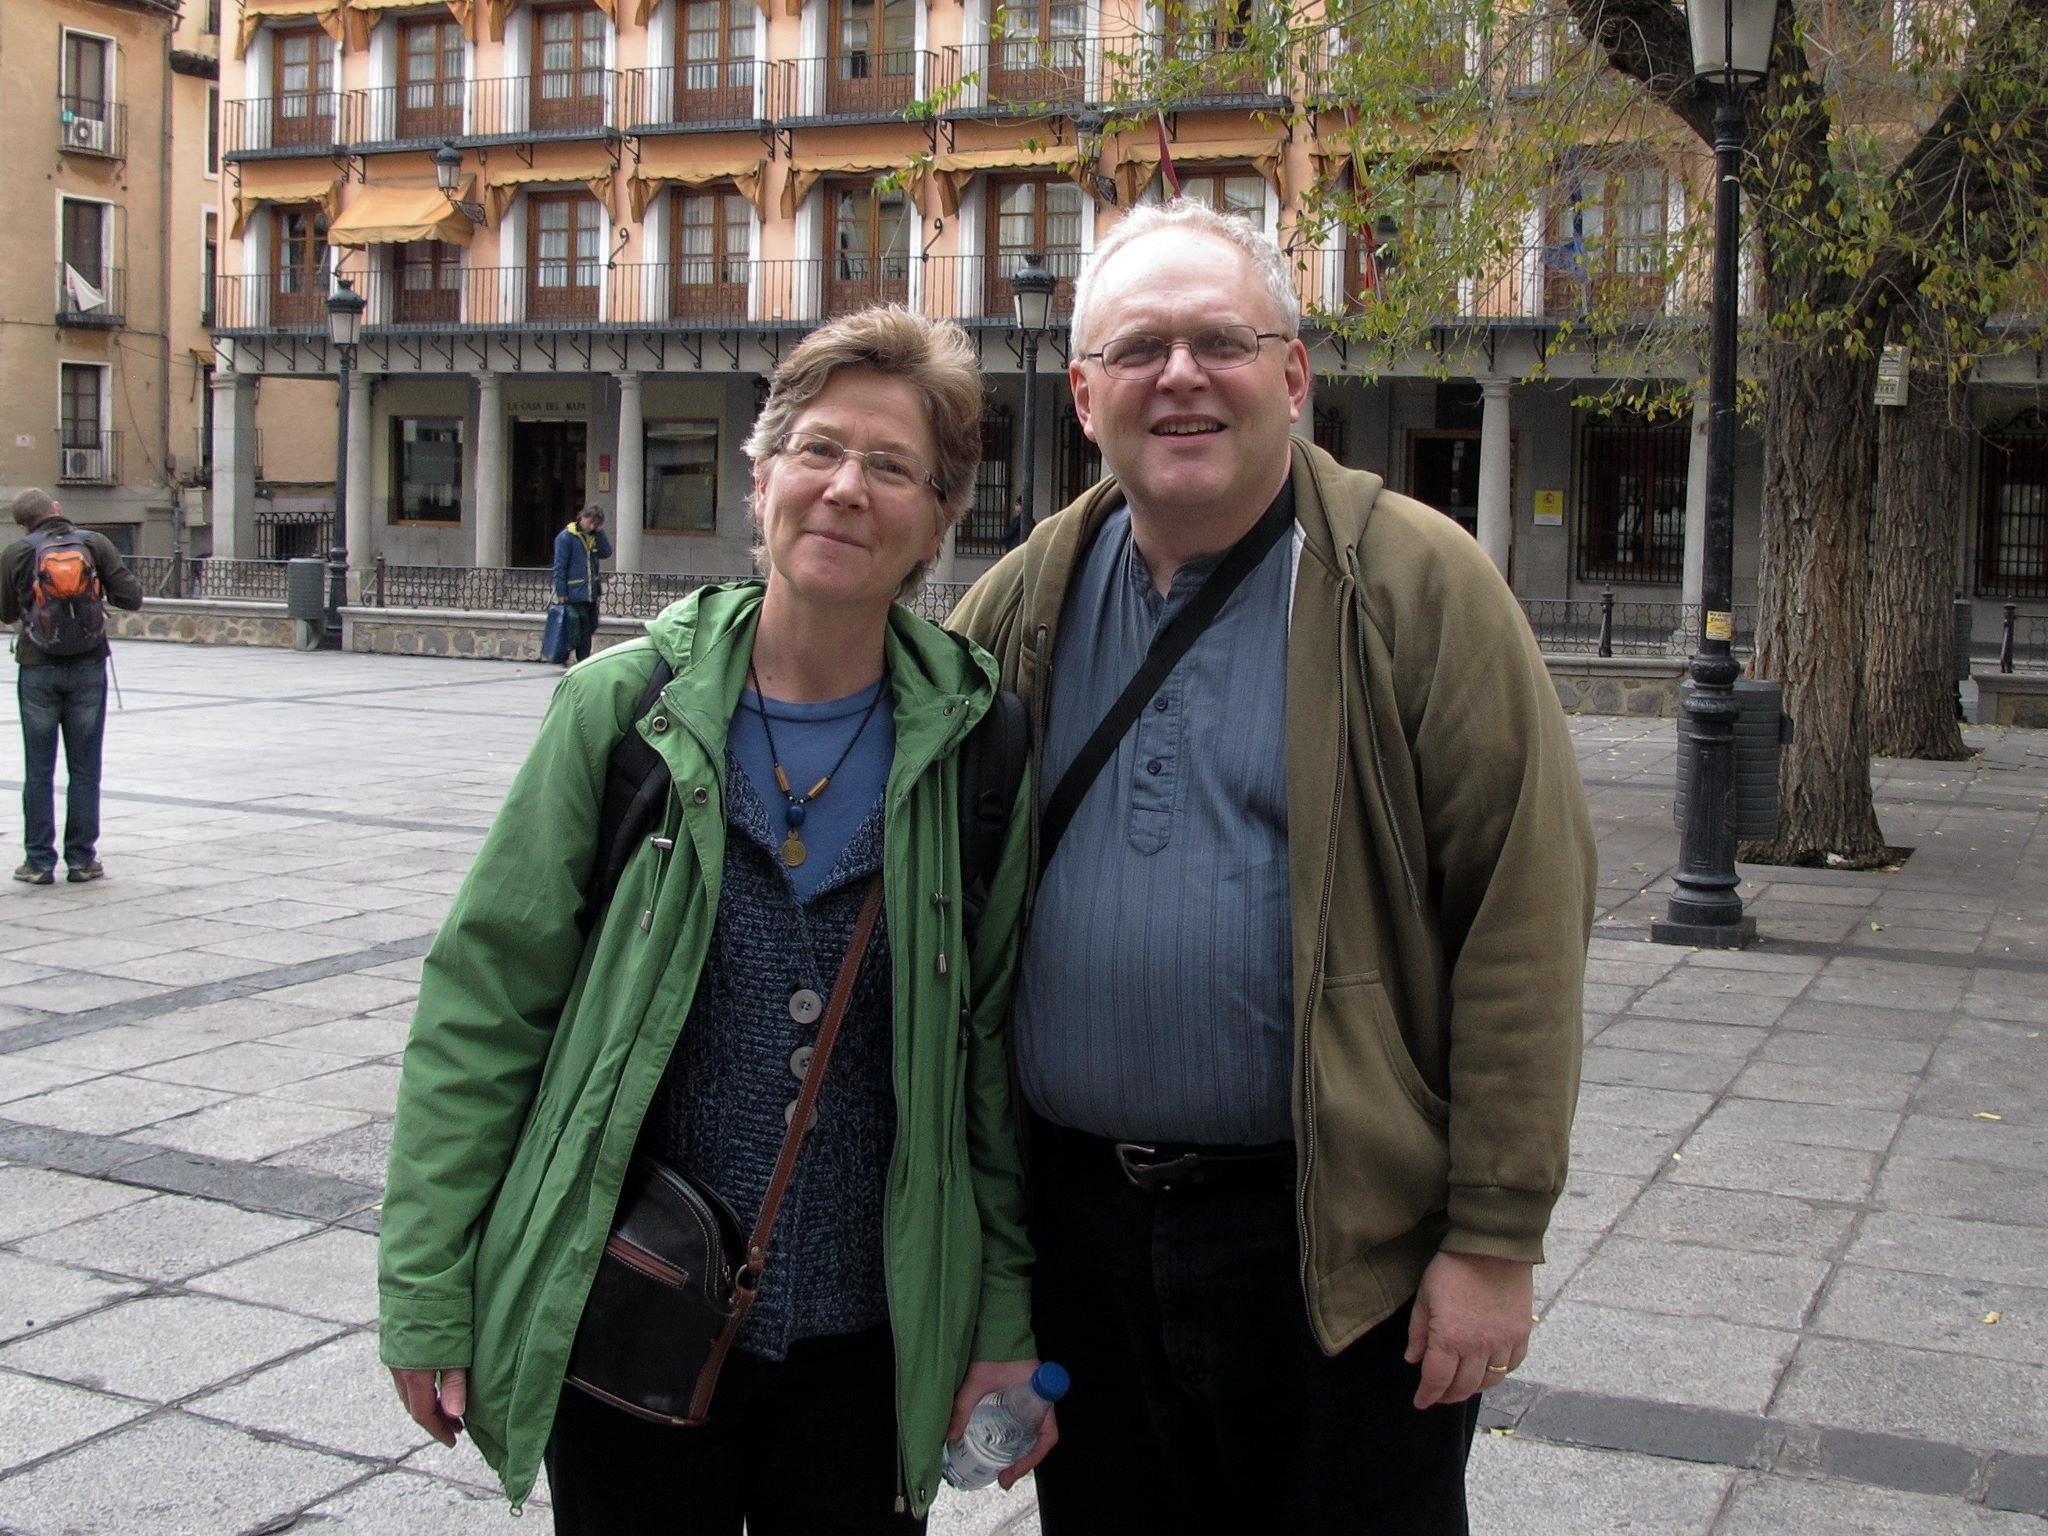 The Winckles - Larry and Katie Winckles have served as Free Methodist missionaries in Budapest, Hungary since 2000. Larry is the Europe Area Administrator for Free Methodist World Missions and can provide an overview of the Europe-wide situation. Katie is a member of the Budapest Mission Team and has valuable insight into the brokenness of European society.